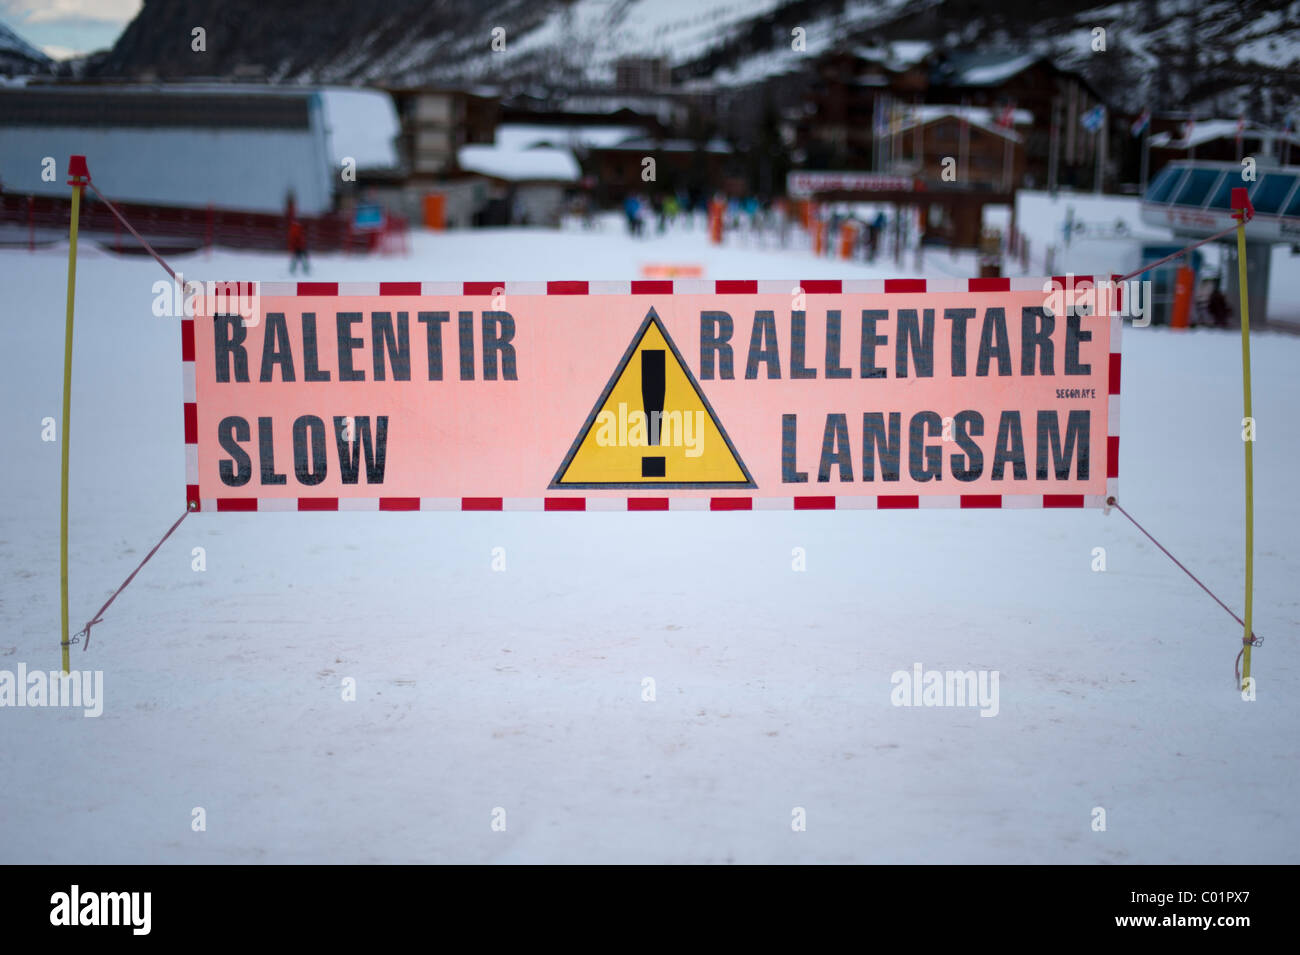 Slow sign on piste in Val D'Isere France. Close up of sign with background out of focus. - Stock Image